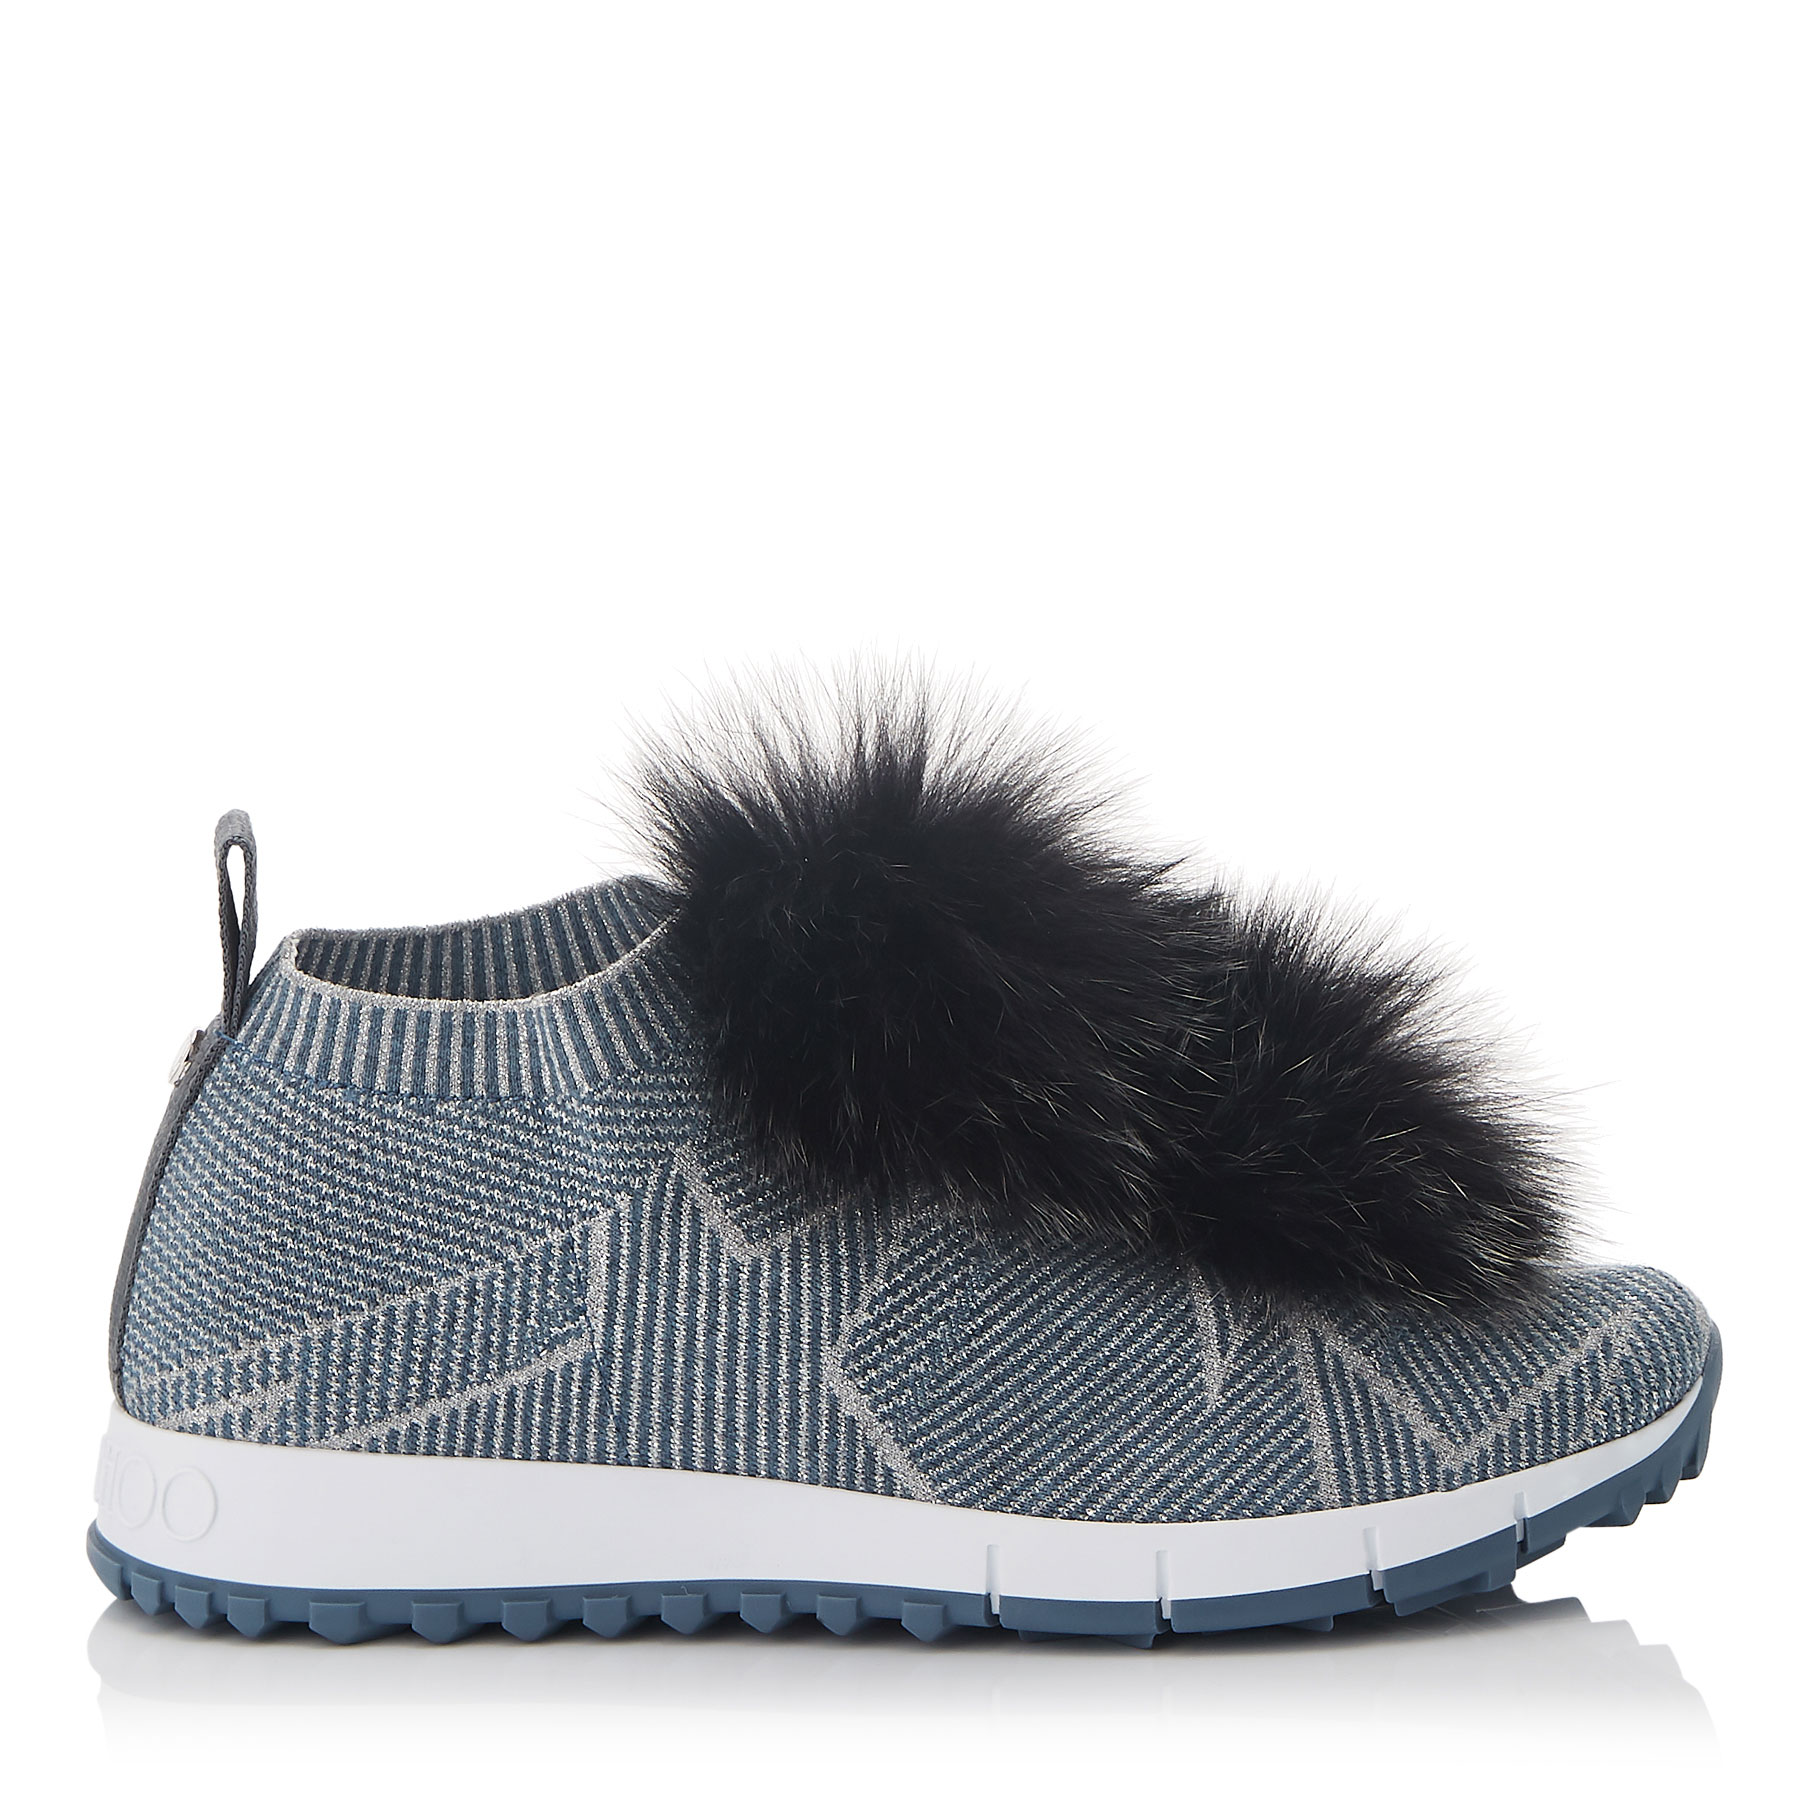 NORWAY Dusk Blue Knit and Steel Mix Lurex Trainers with Fur Pom Poms by Jimmy Choo